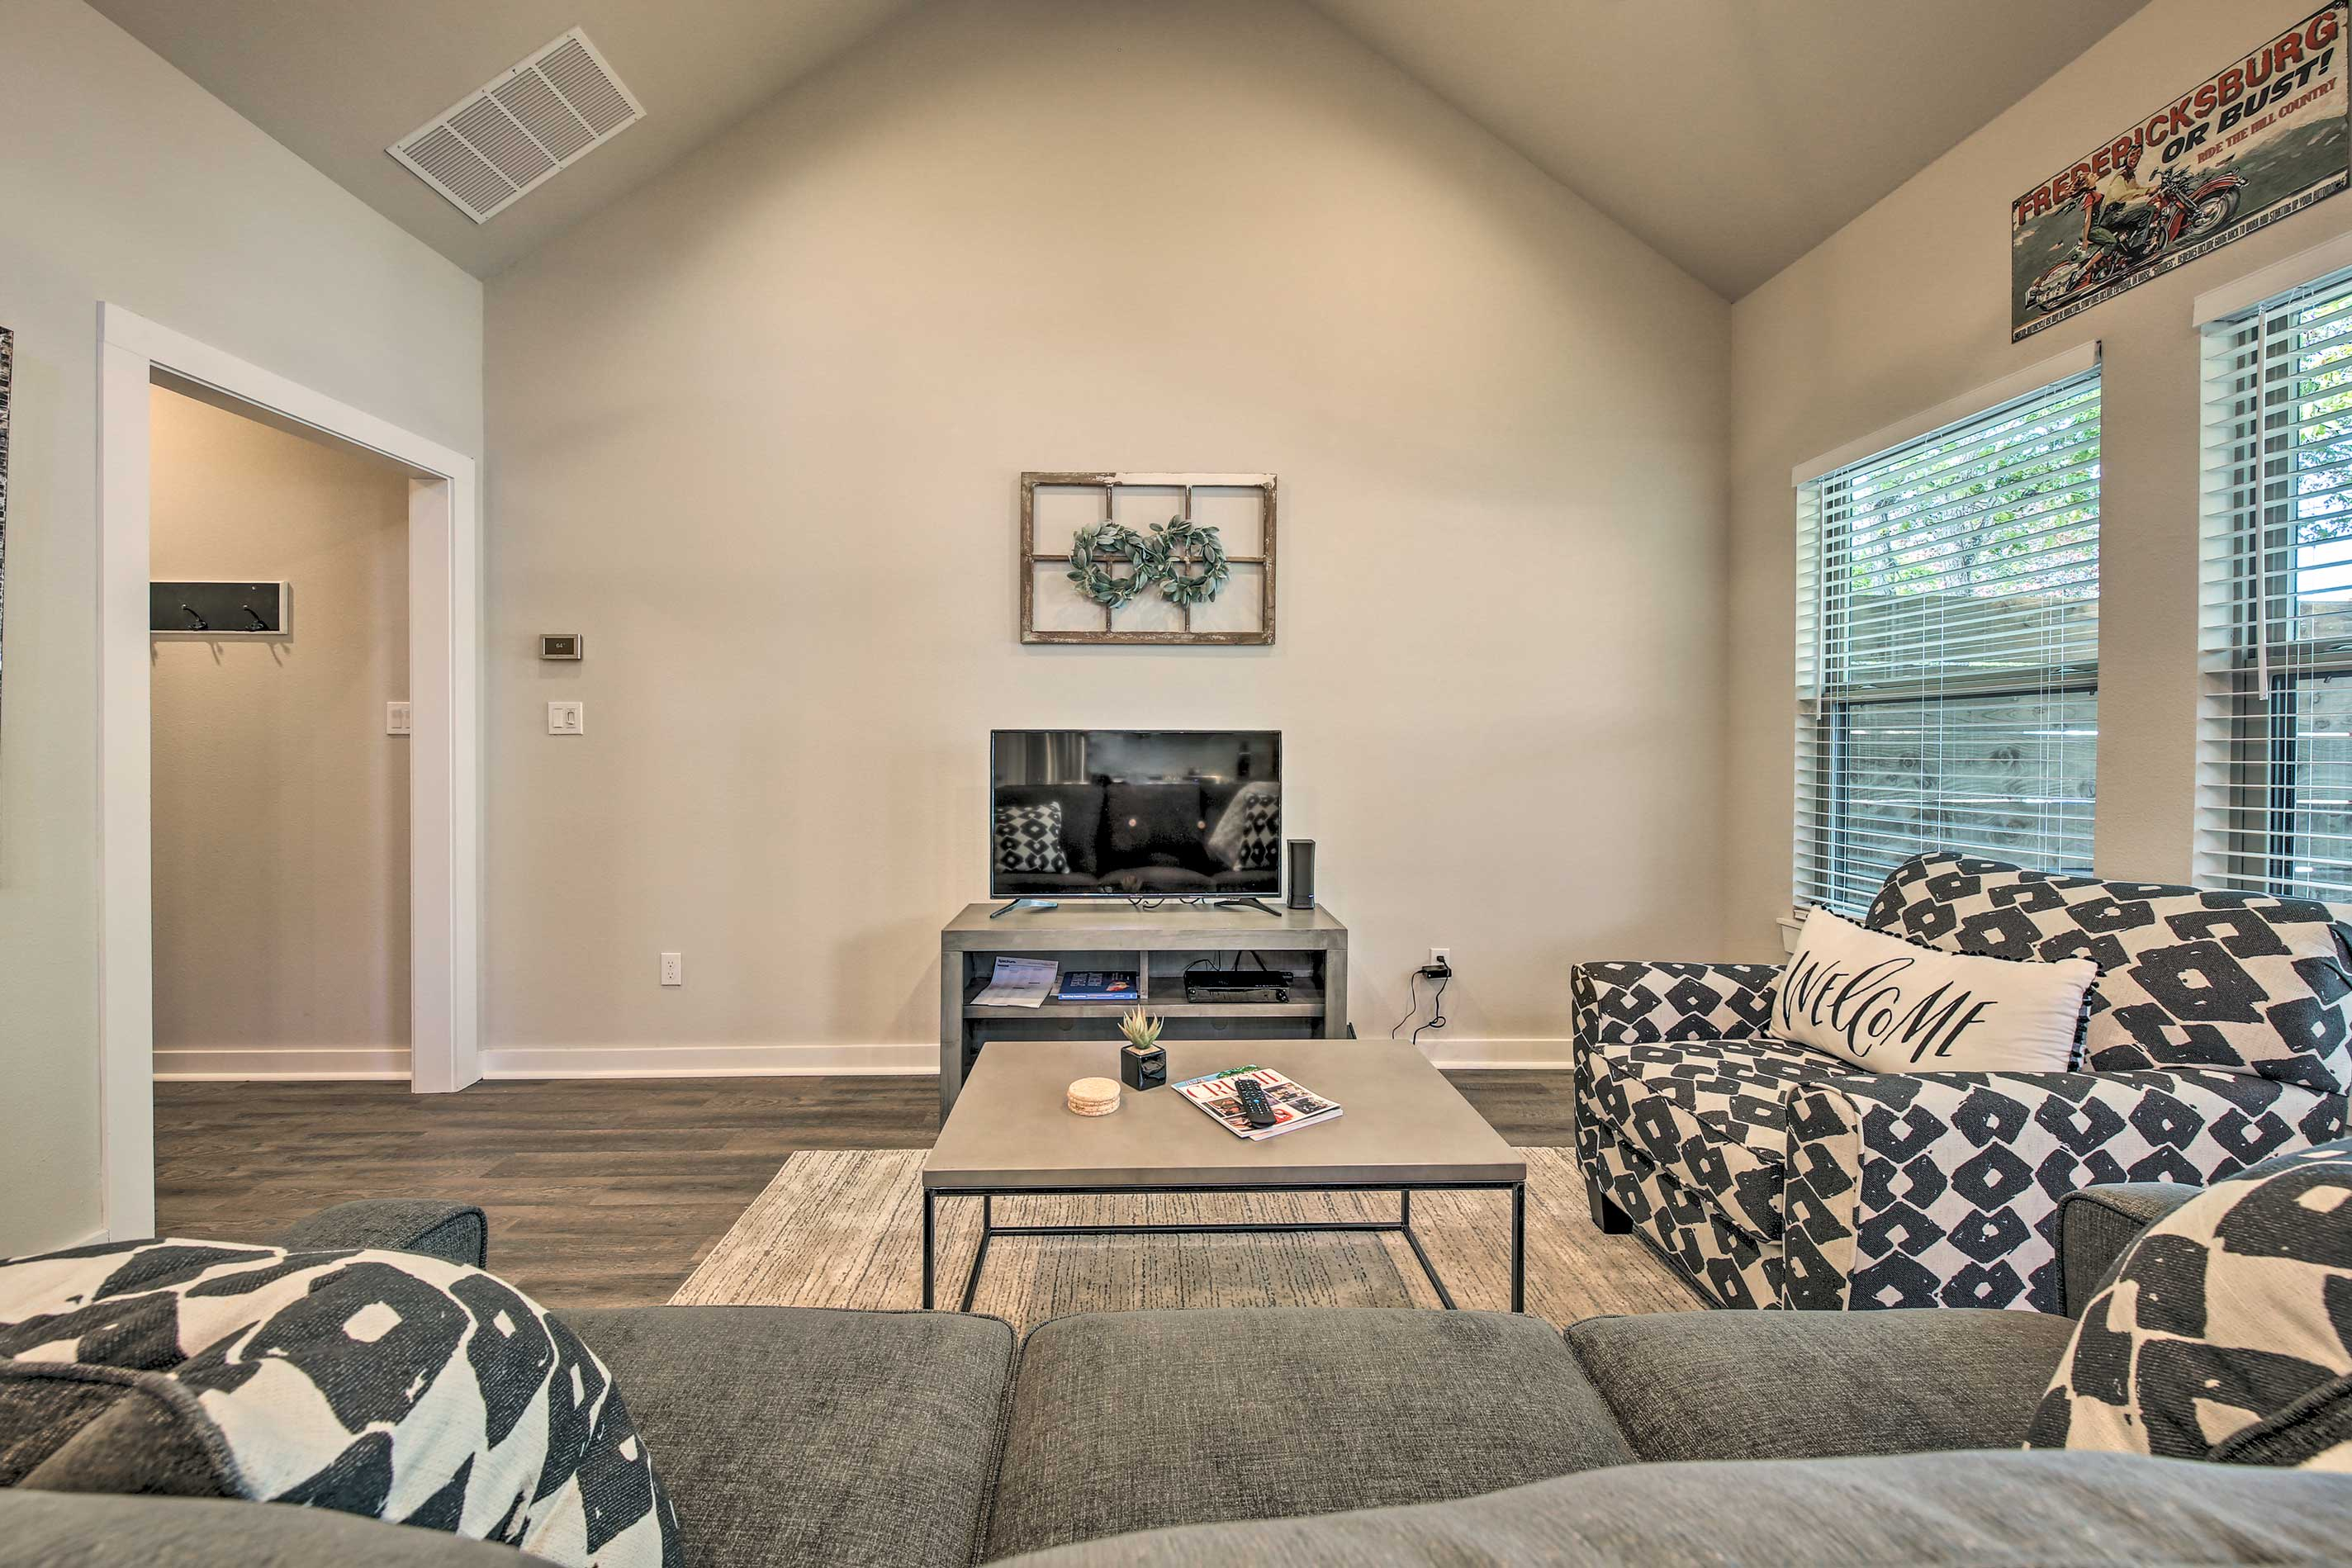 Make yourself at home in this warm and welcoming living area.